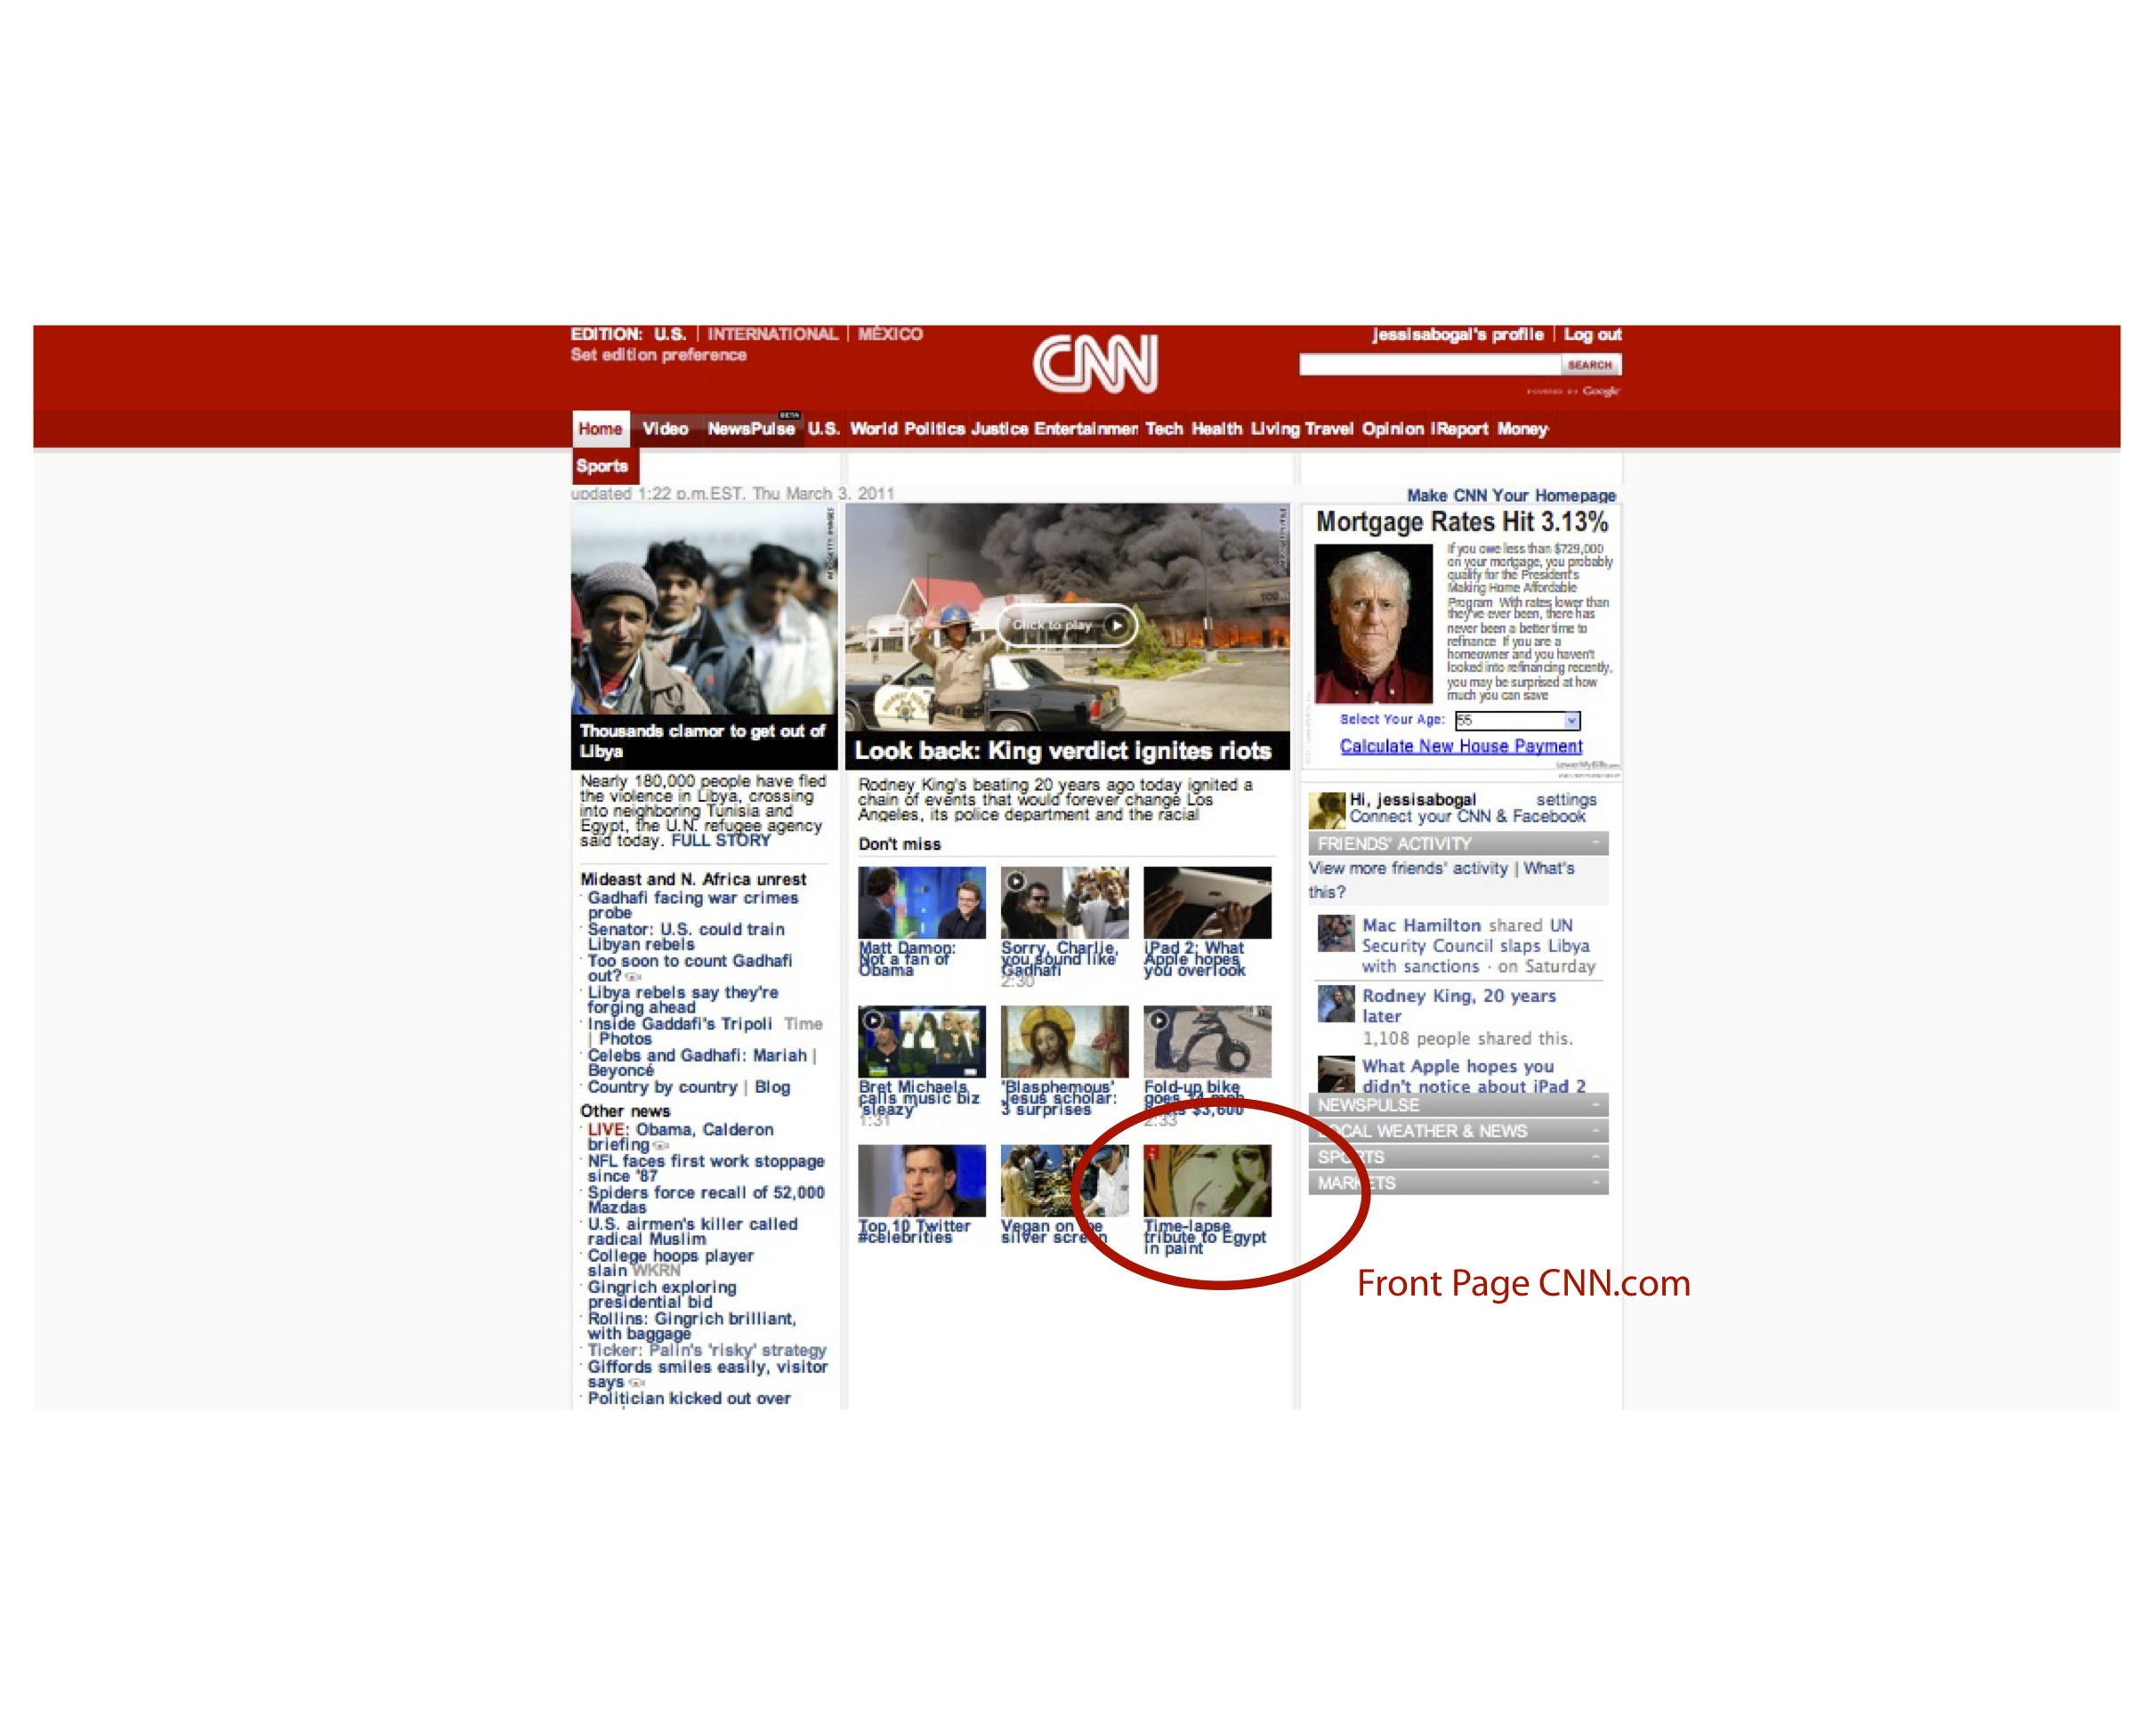 cnn front page red.jpg